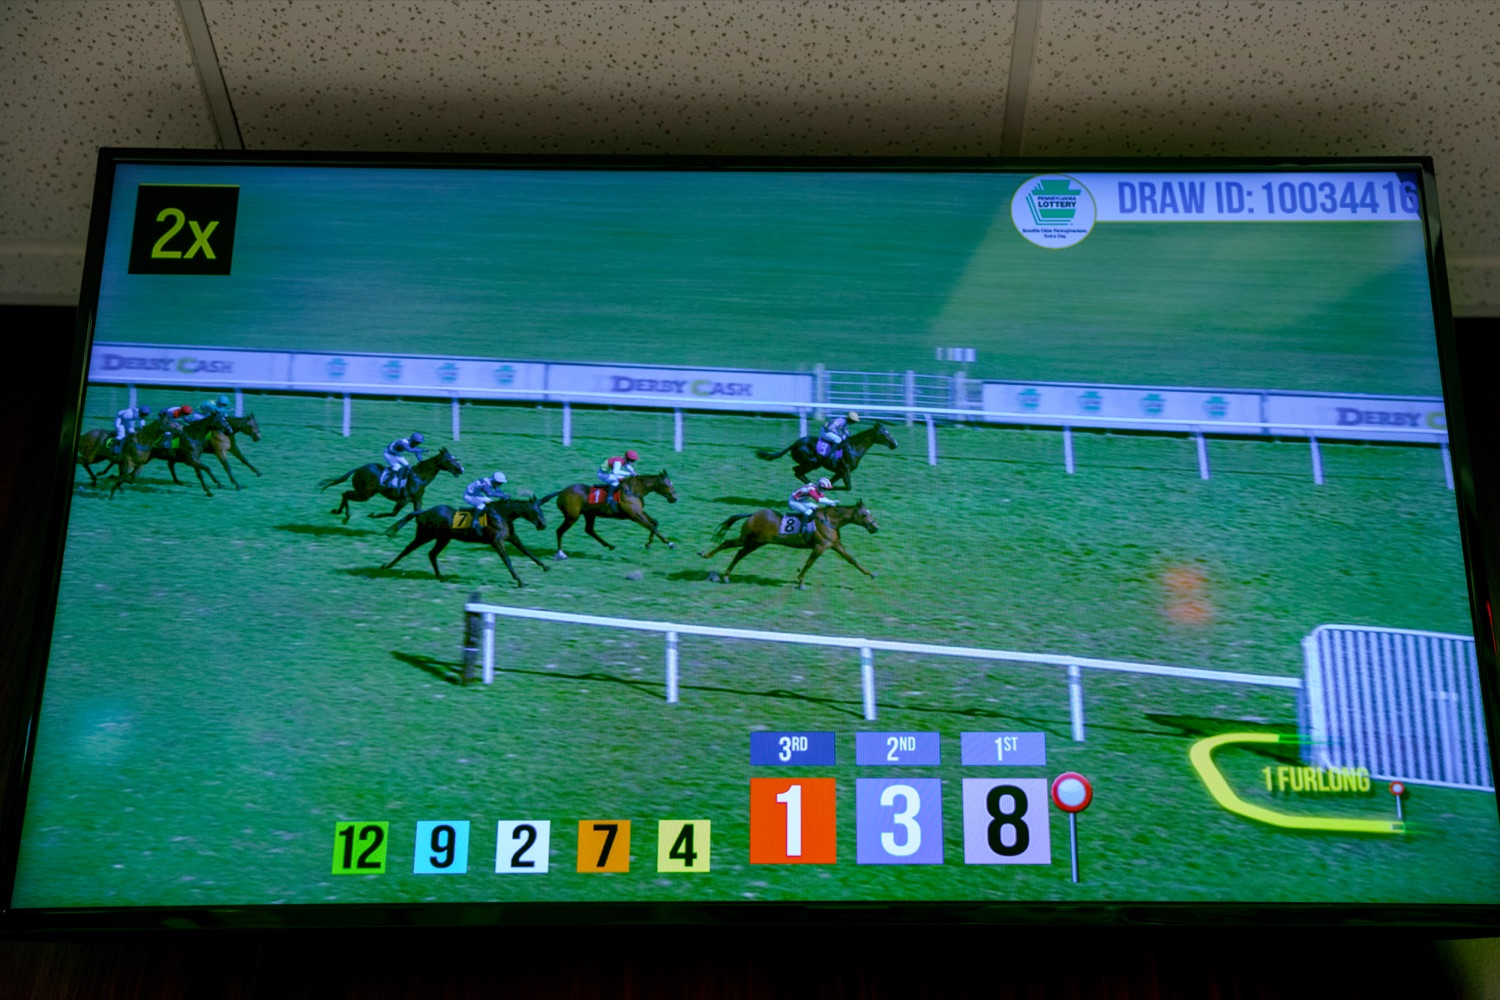 """<a href=""""http://filesource.abacast.com/commonwealthofpa/photo/17265_Lottery_Derby_Cash_NK_005.JPG"""" target=""""_blank"""">⇣Download Photo<br></a>The Pennsylvania Lottery today launched Derby Cash Horse Racing, a new and highly anticipated virtual horse racing game that will have players on the edge of their seats. Every five minutes, players have the chance to win up to $800,000 on a $1 play. Purchases can be made anywhere Lottery games are sold and races can be watched at nearly 2,000 of the Lotterys retailers, mainly at bars and restaurants."""